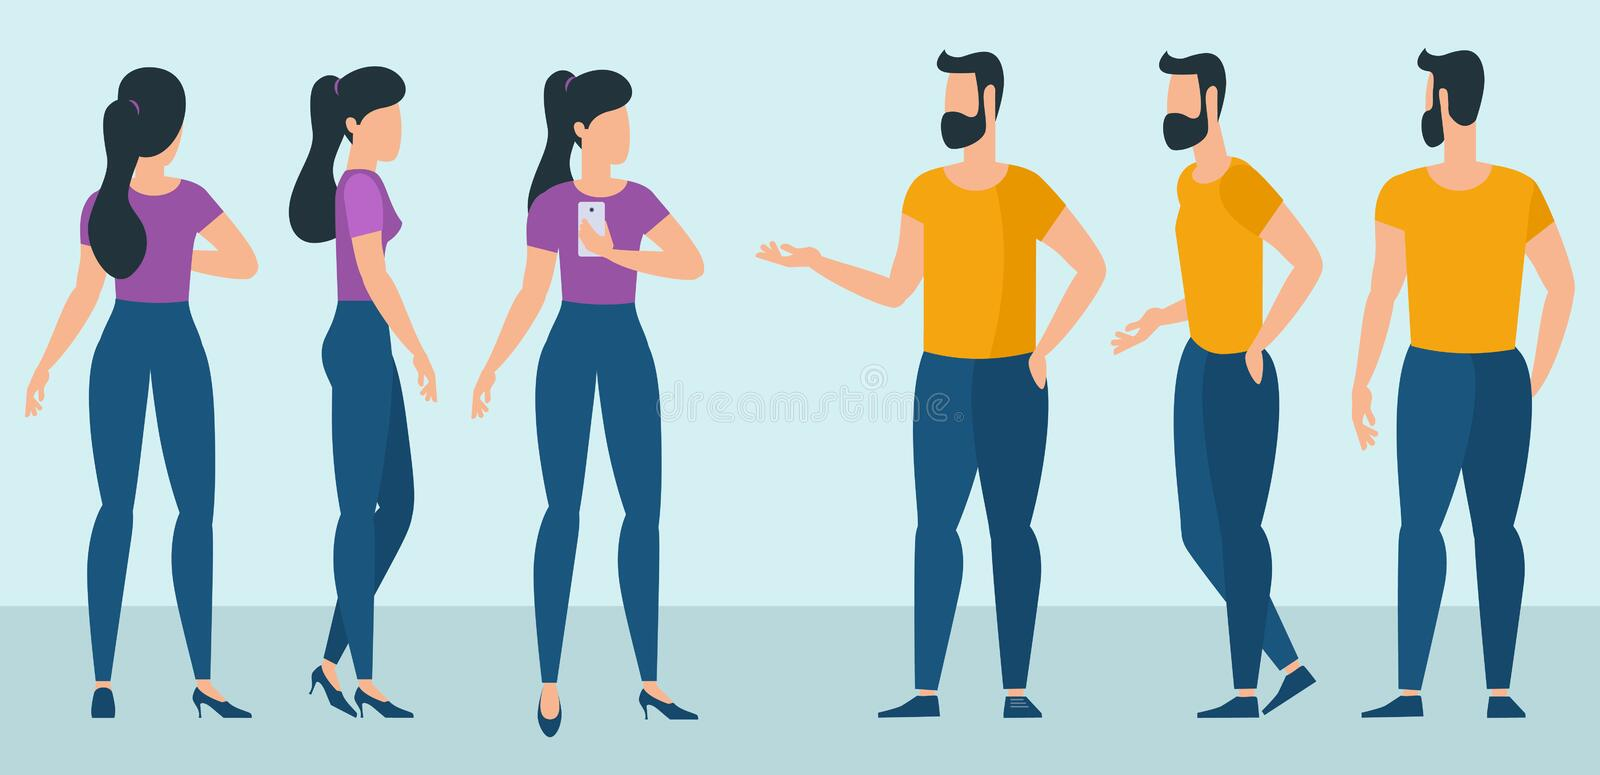 Flat design ready to animation characters royalty free illustration